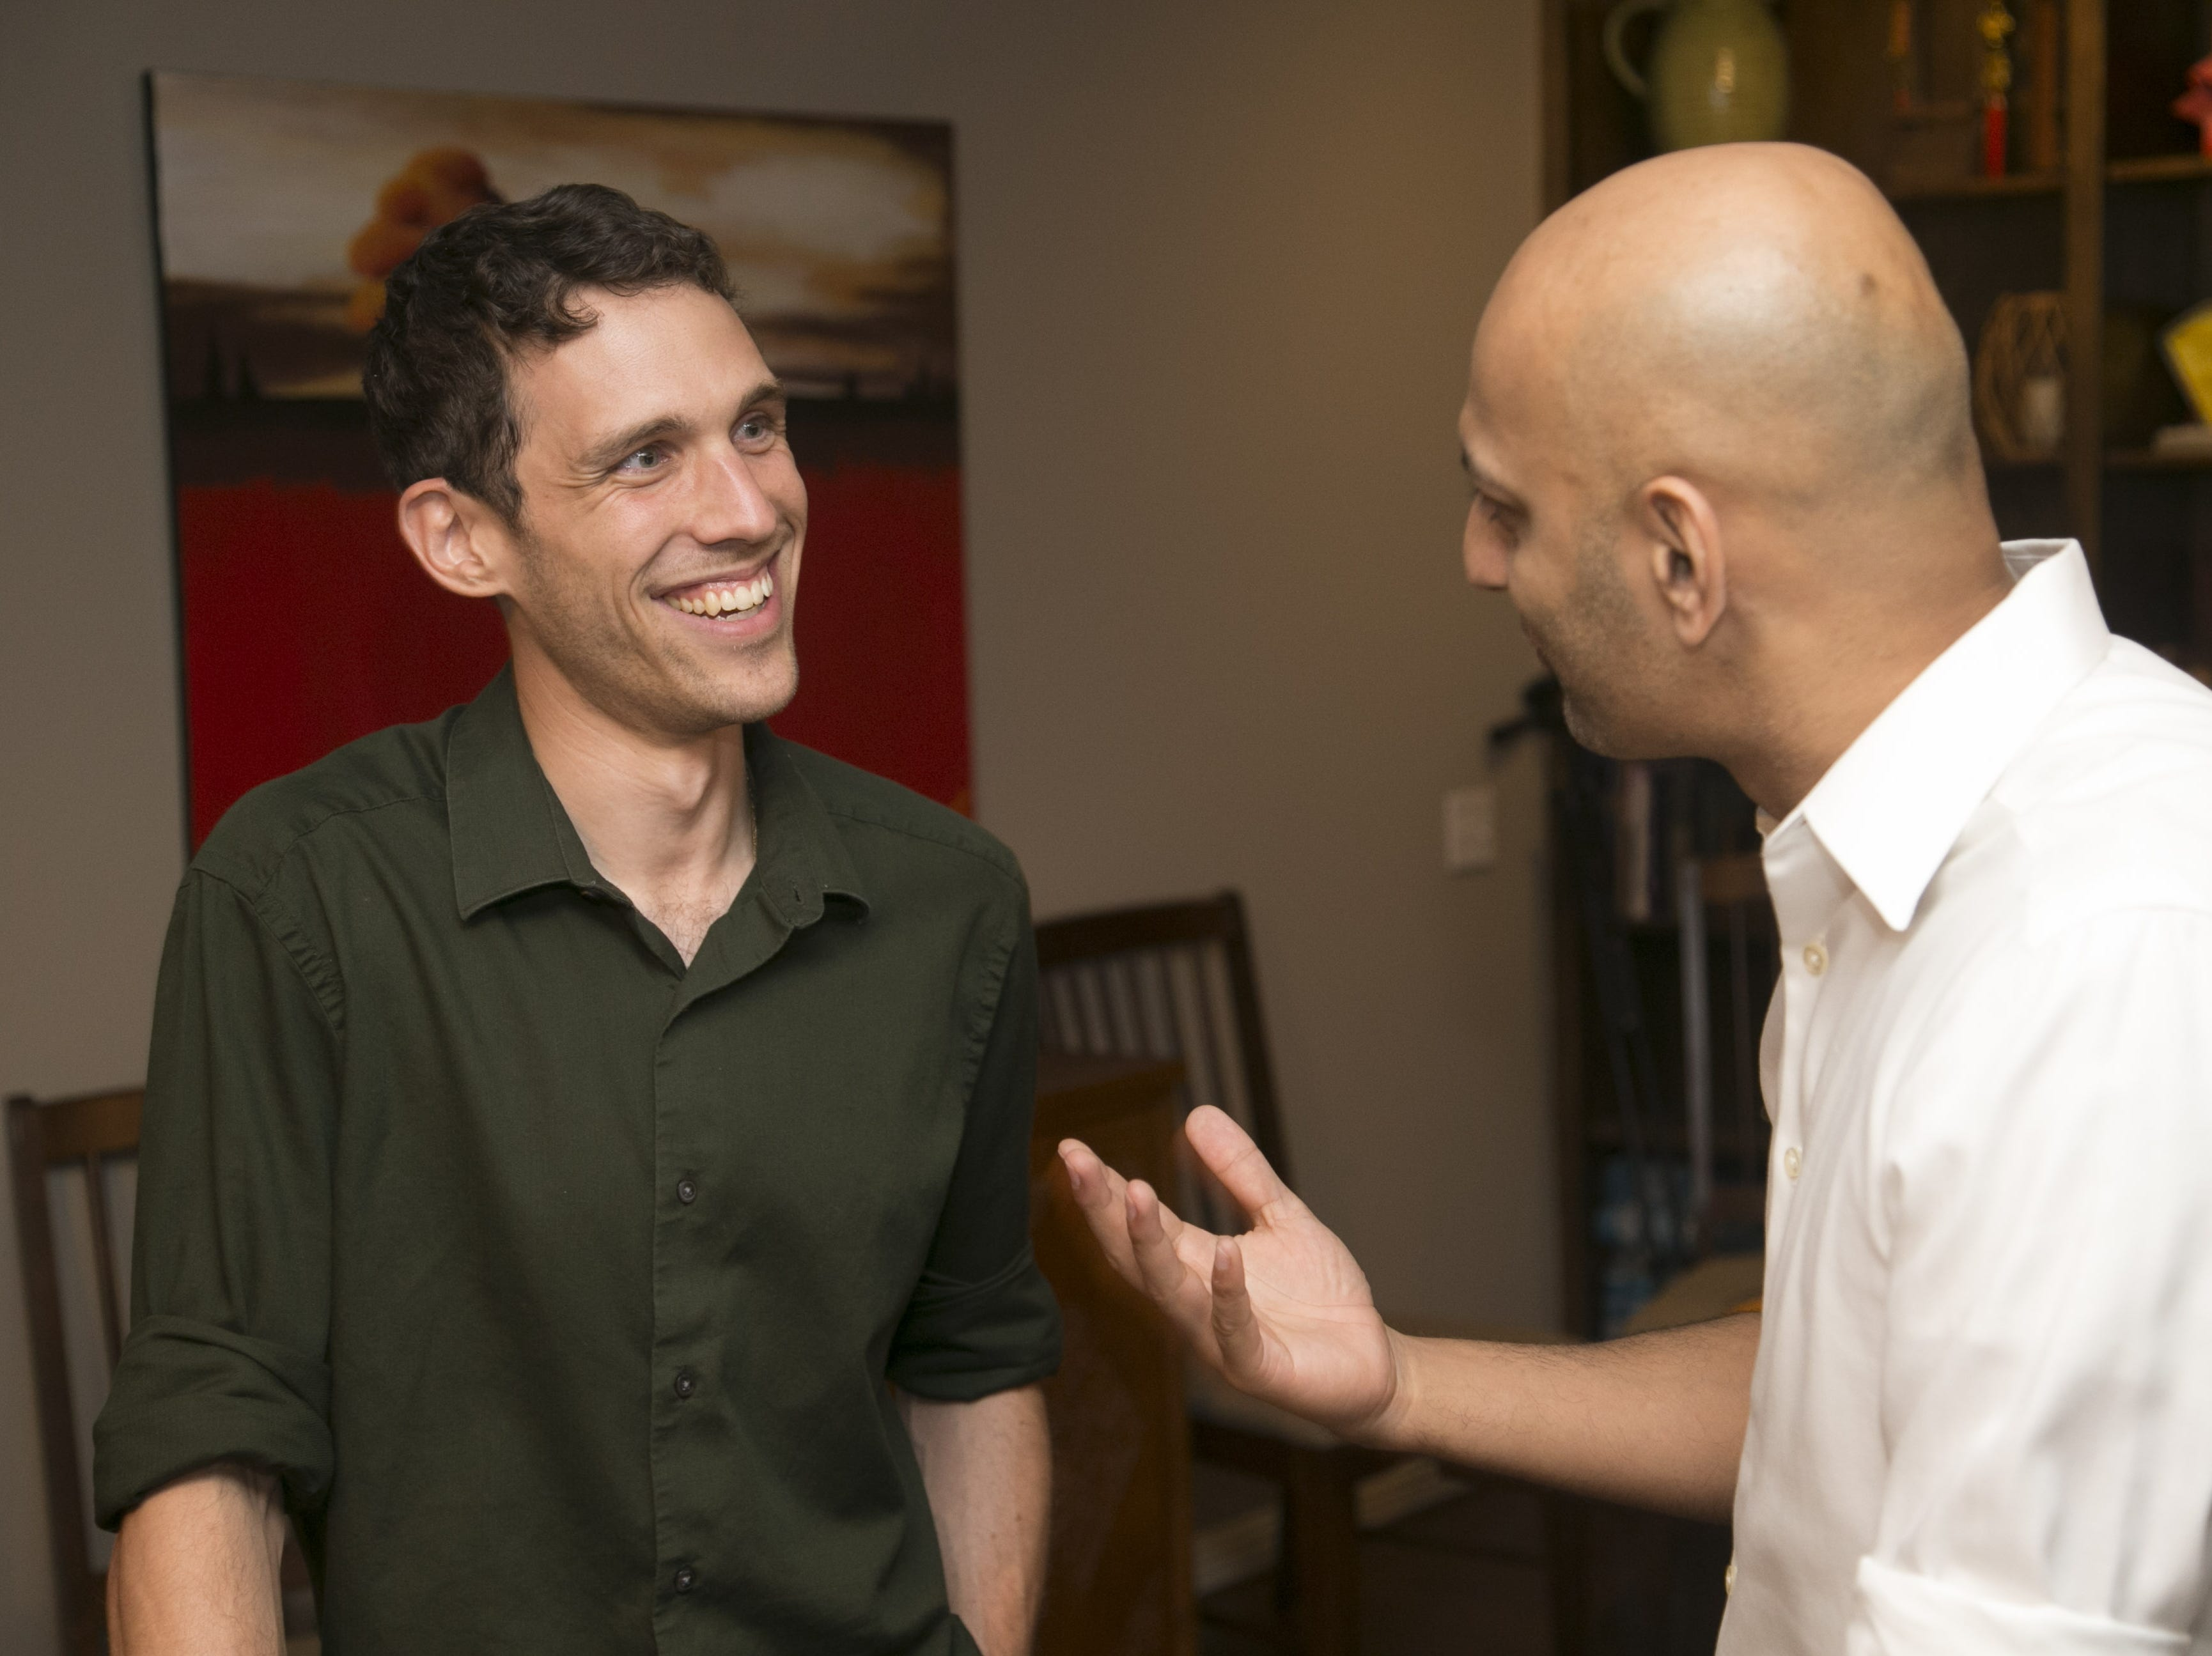 Jonathan Gelbart, (left) a Republican primary candidate for state superintendent of public instruction, speaks with supporter Ronjon Bhattacharya at a watch party at his Tempe home on Aug. 28, 2018.